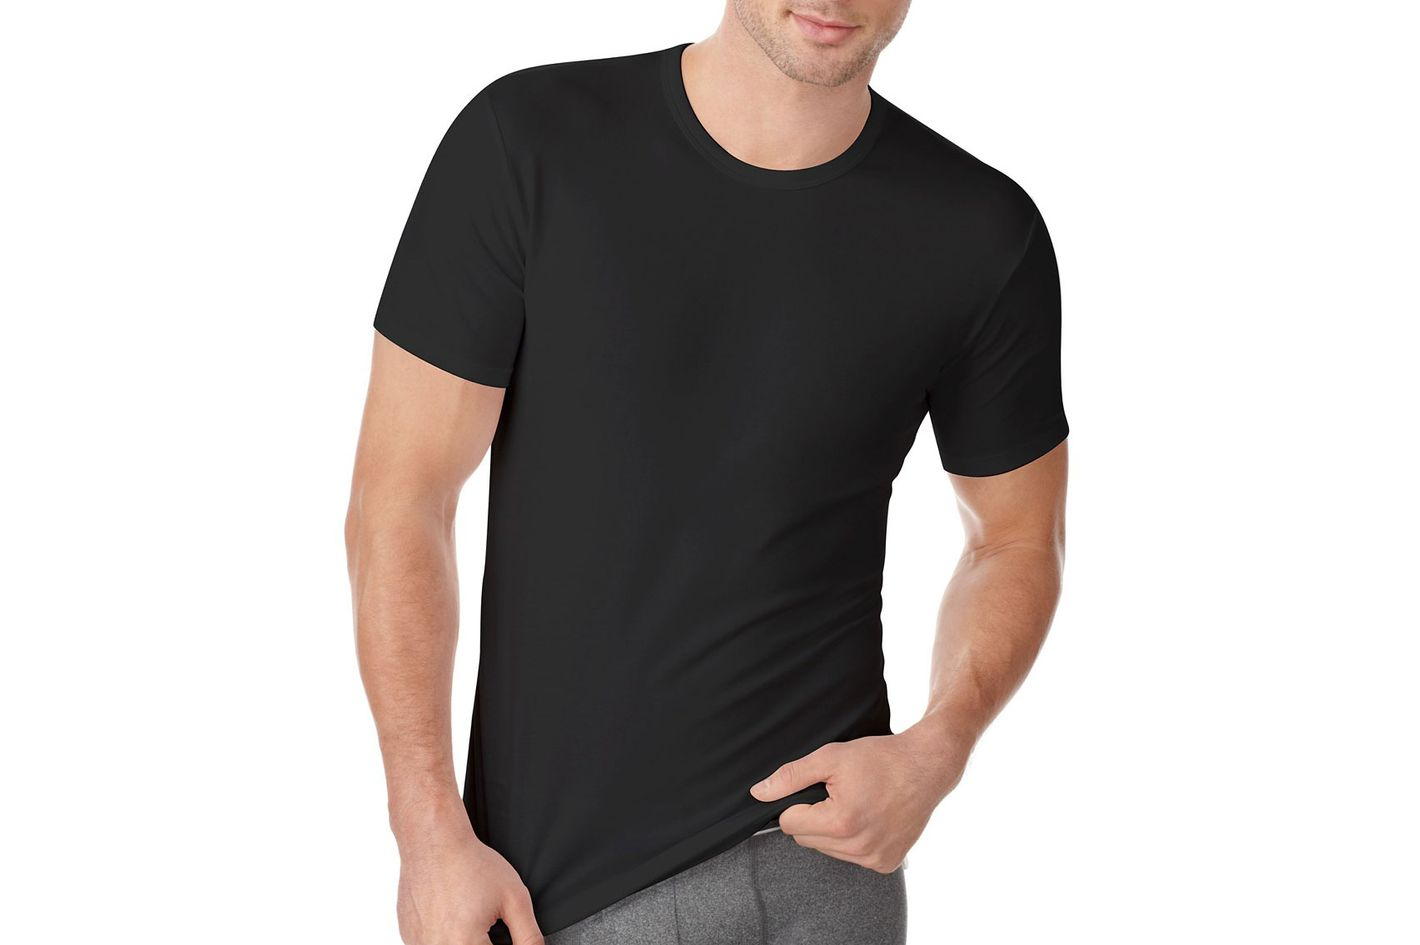 419cd995 Best stretchy black T-shirt. Calvin Klein Men's Cotton Stretch Crew-neck  Undershirt 2-Pack